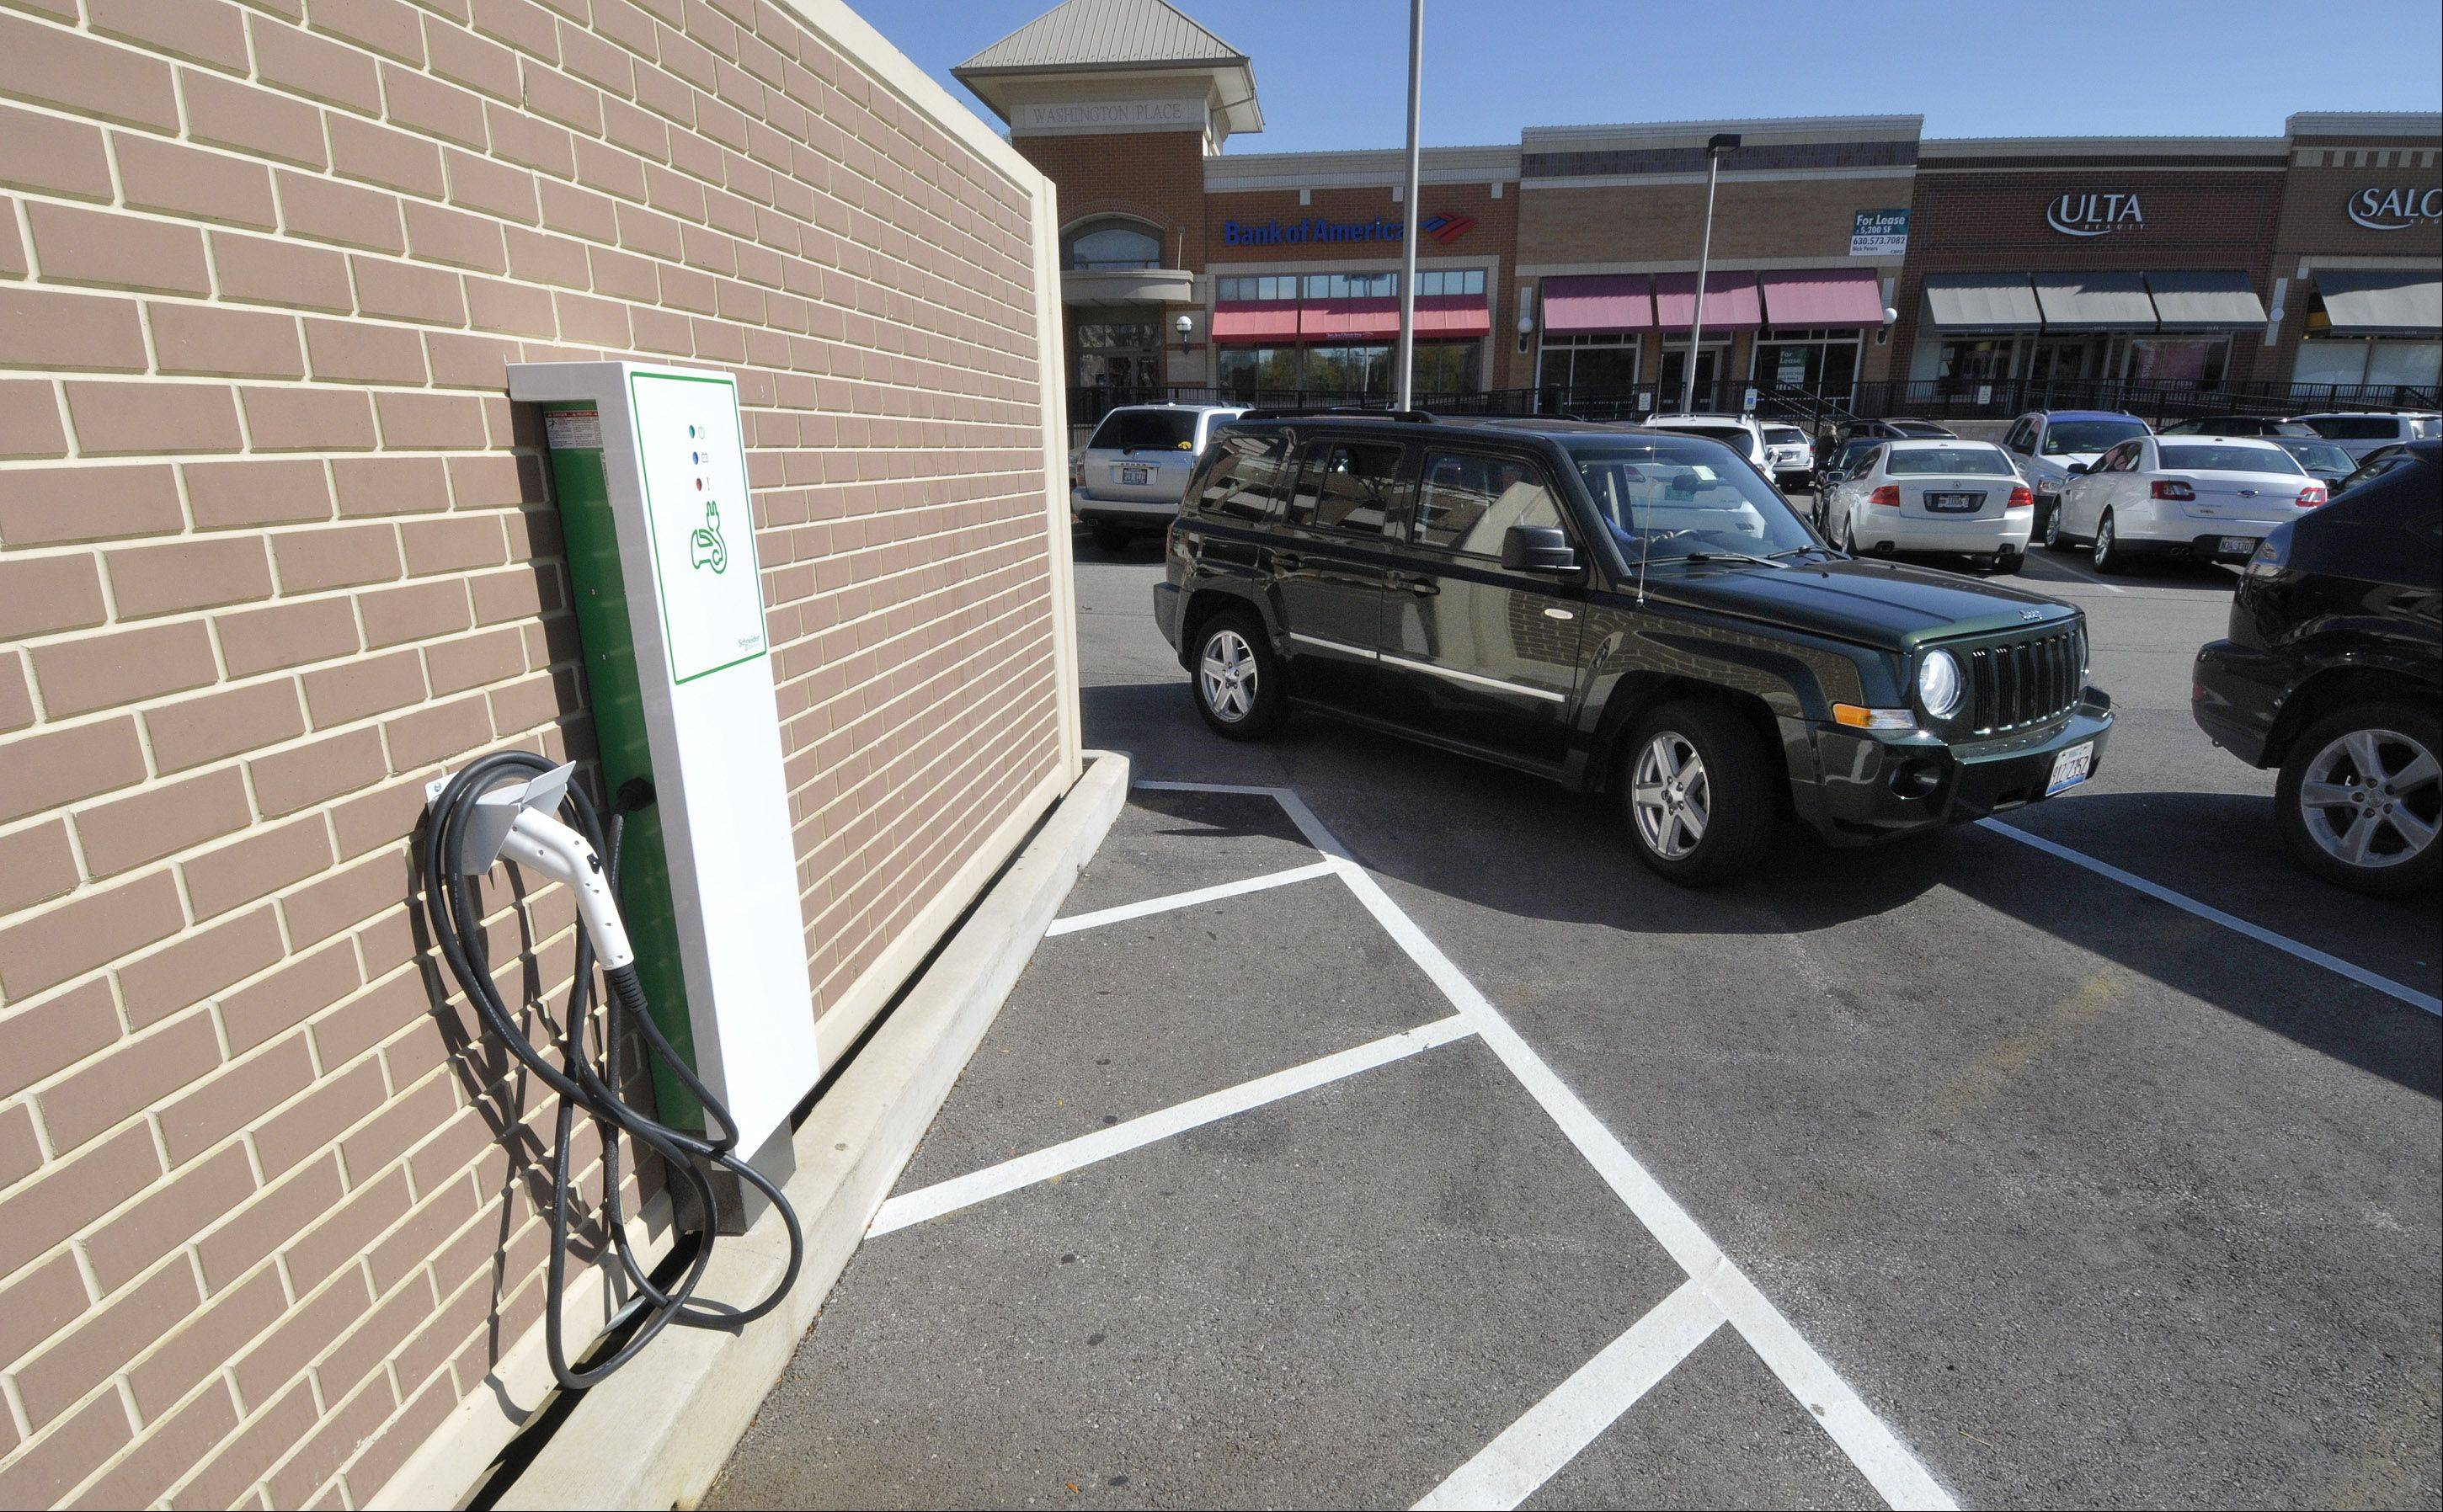 Naperville is planning to install more electric car charging stations after this one in the Van Buren Street parking lot provided 468 charges between October and June.